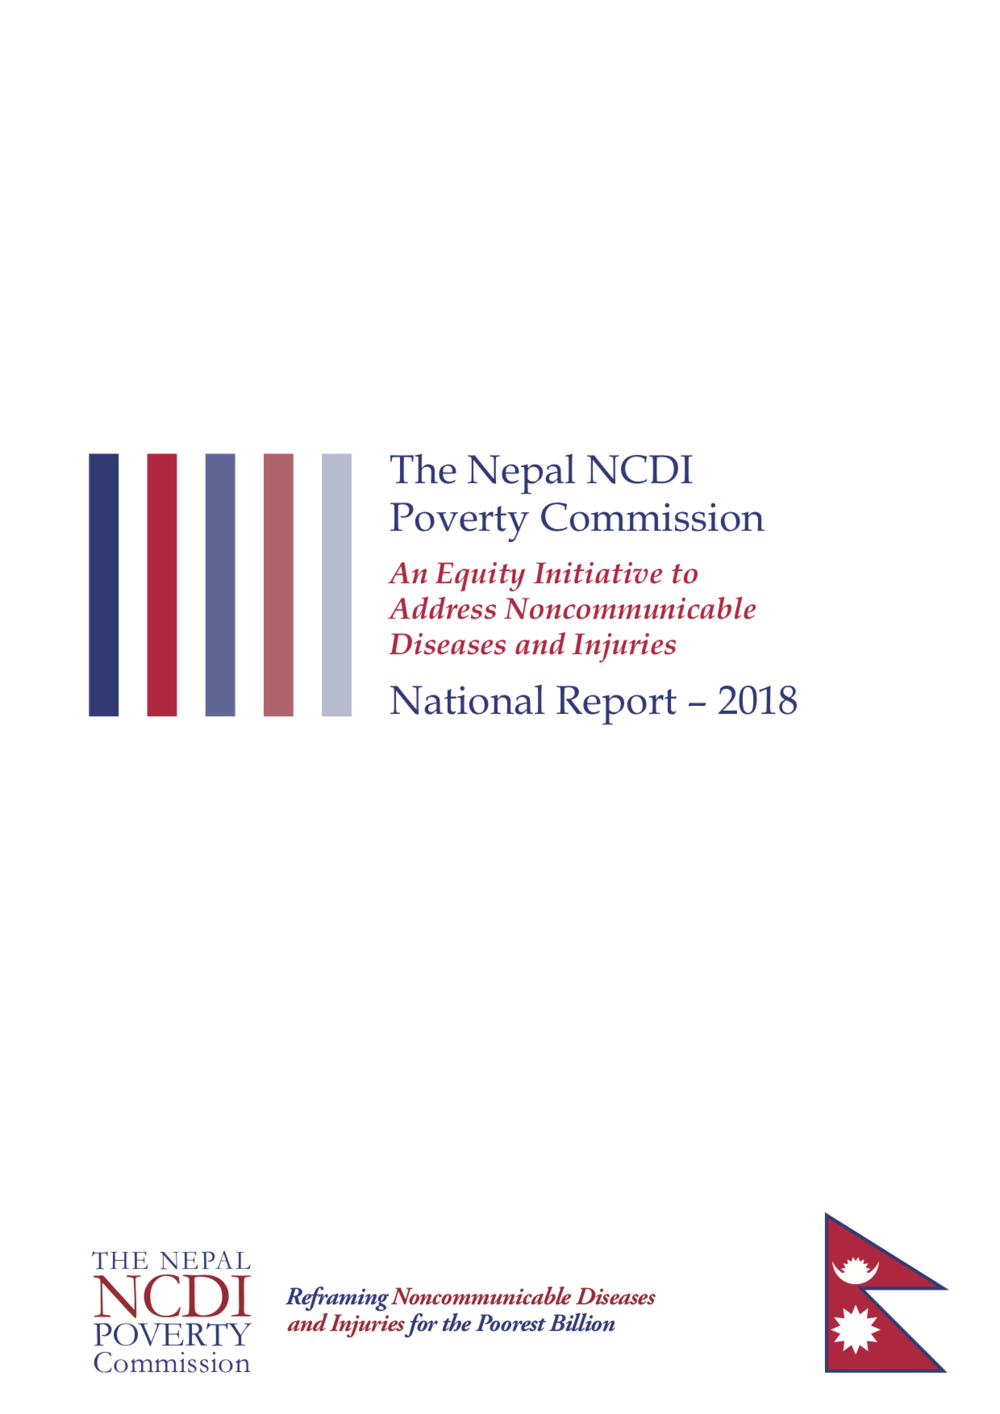 Nepal NCDI Poverty Commission Report